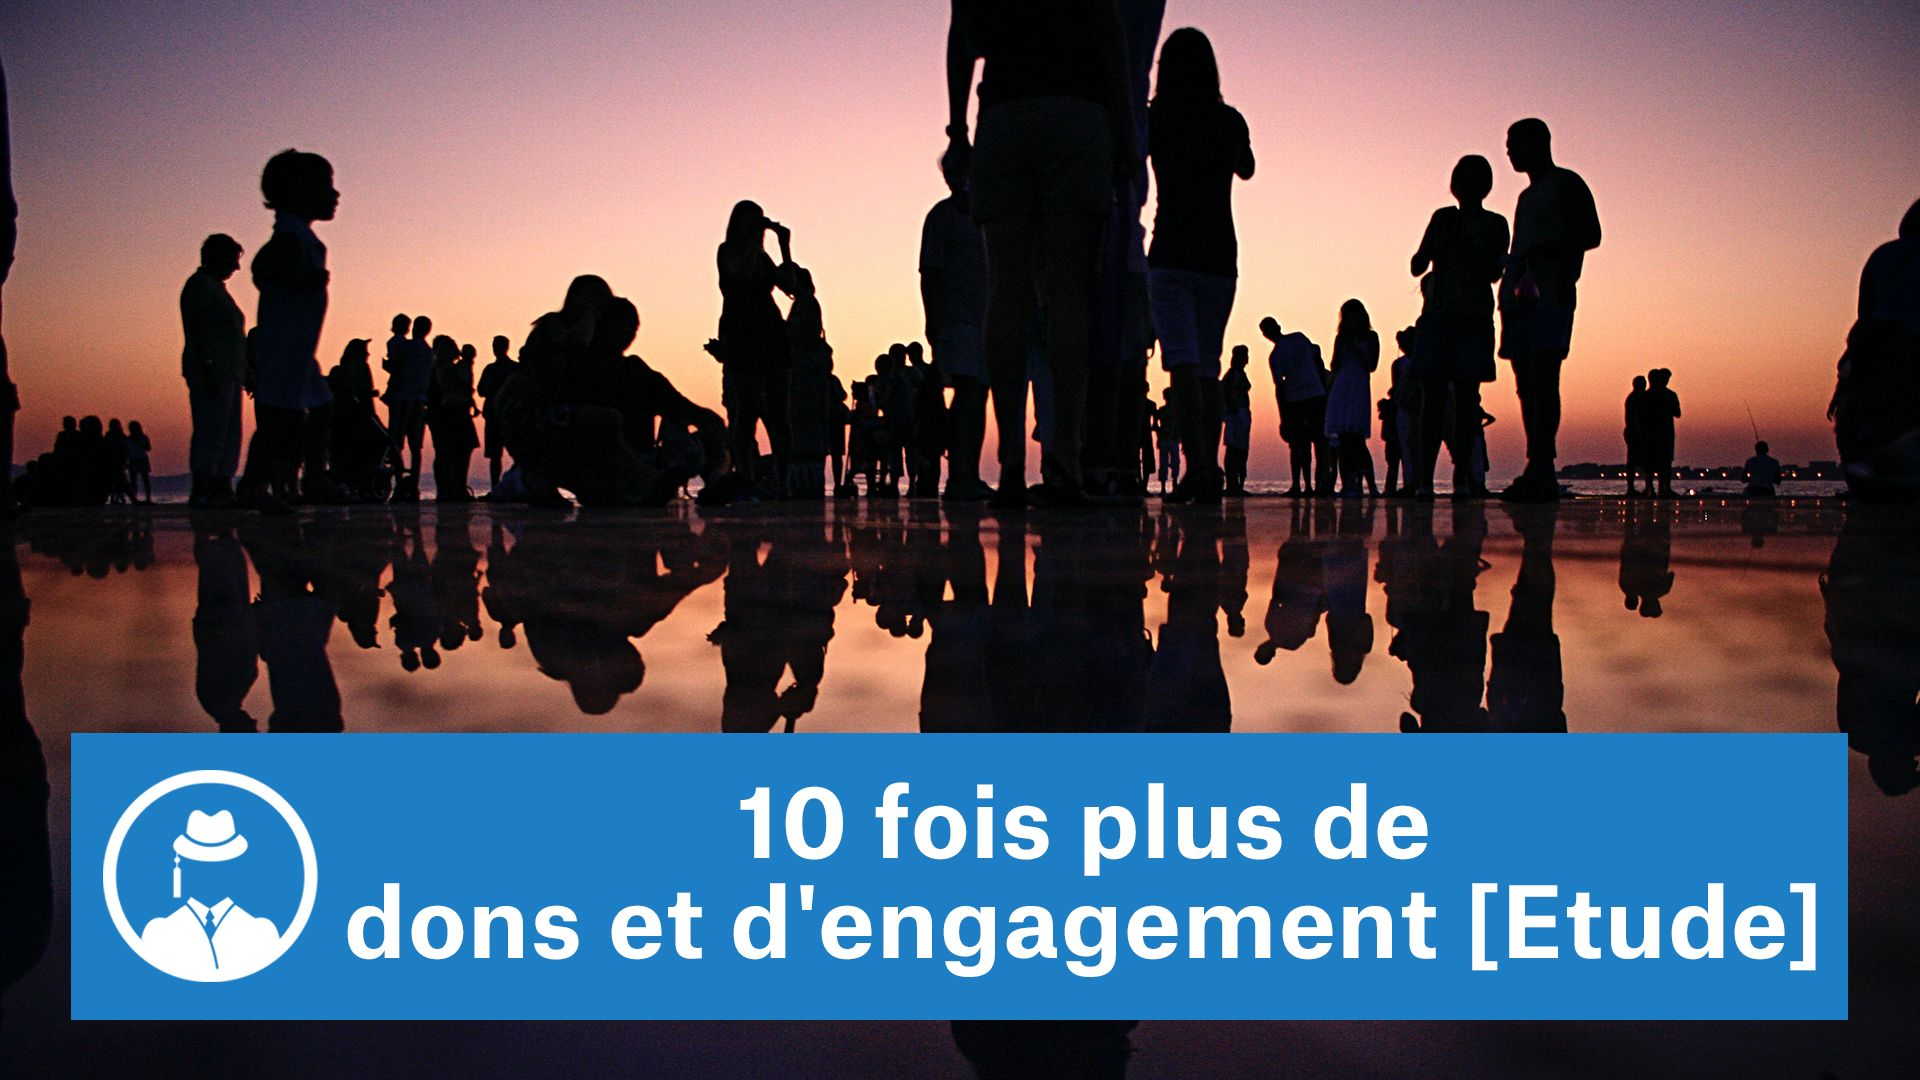 10 fois plus de dons et d'engagement [Etude] #GrowthHacking #WebMarketing #FormationGrowthHacking #CentreDeFormationFrance #TunnelAARRR #AARRR #SocialMedia #CommunityManagement #SEO #MarketingDigital #SiteWeb